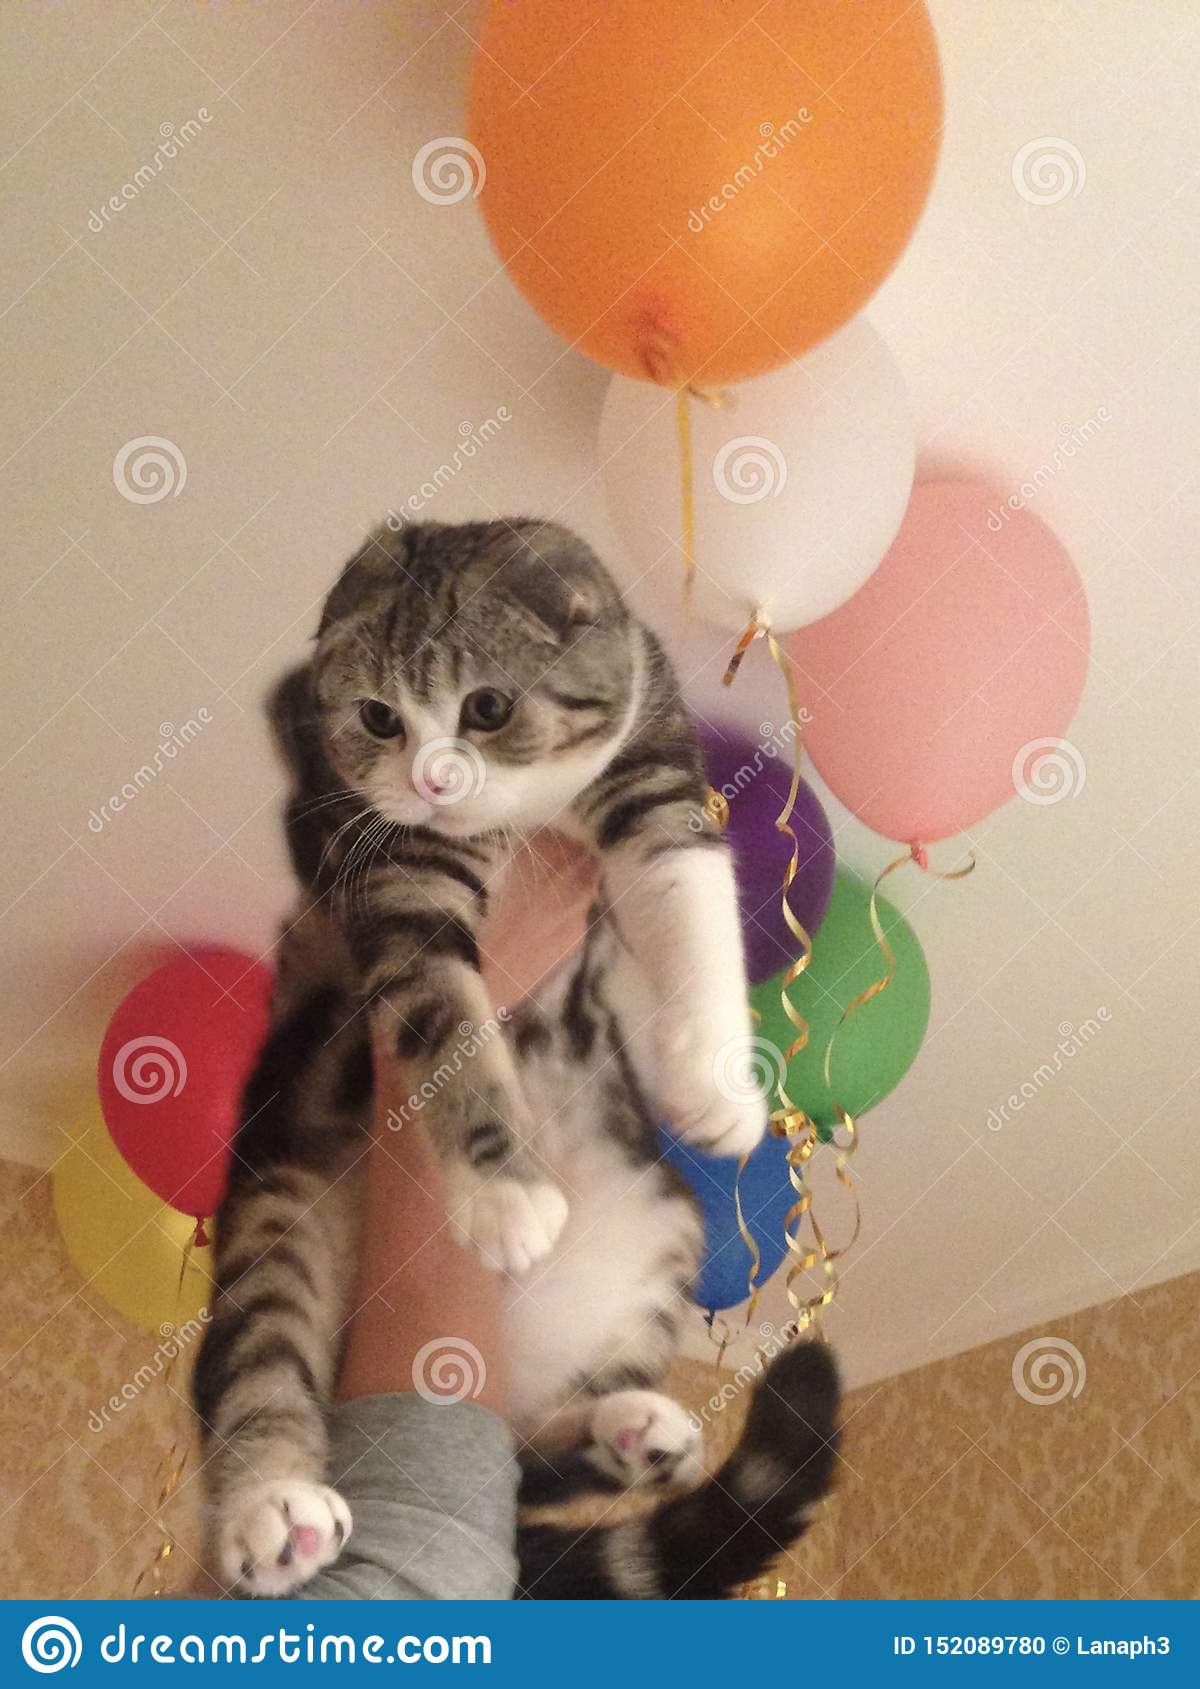 funny cat with balloons